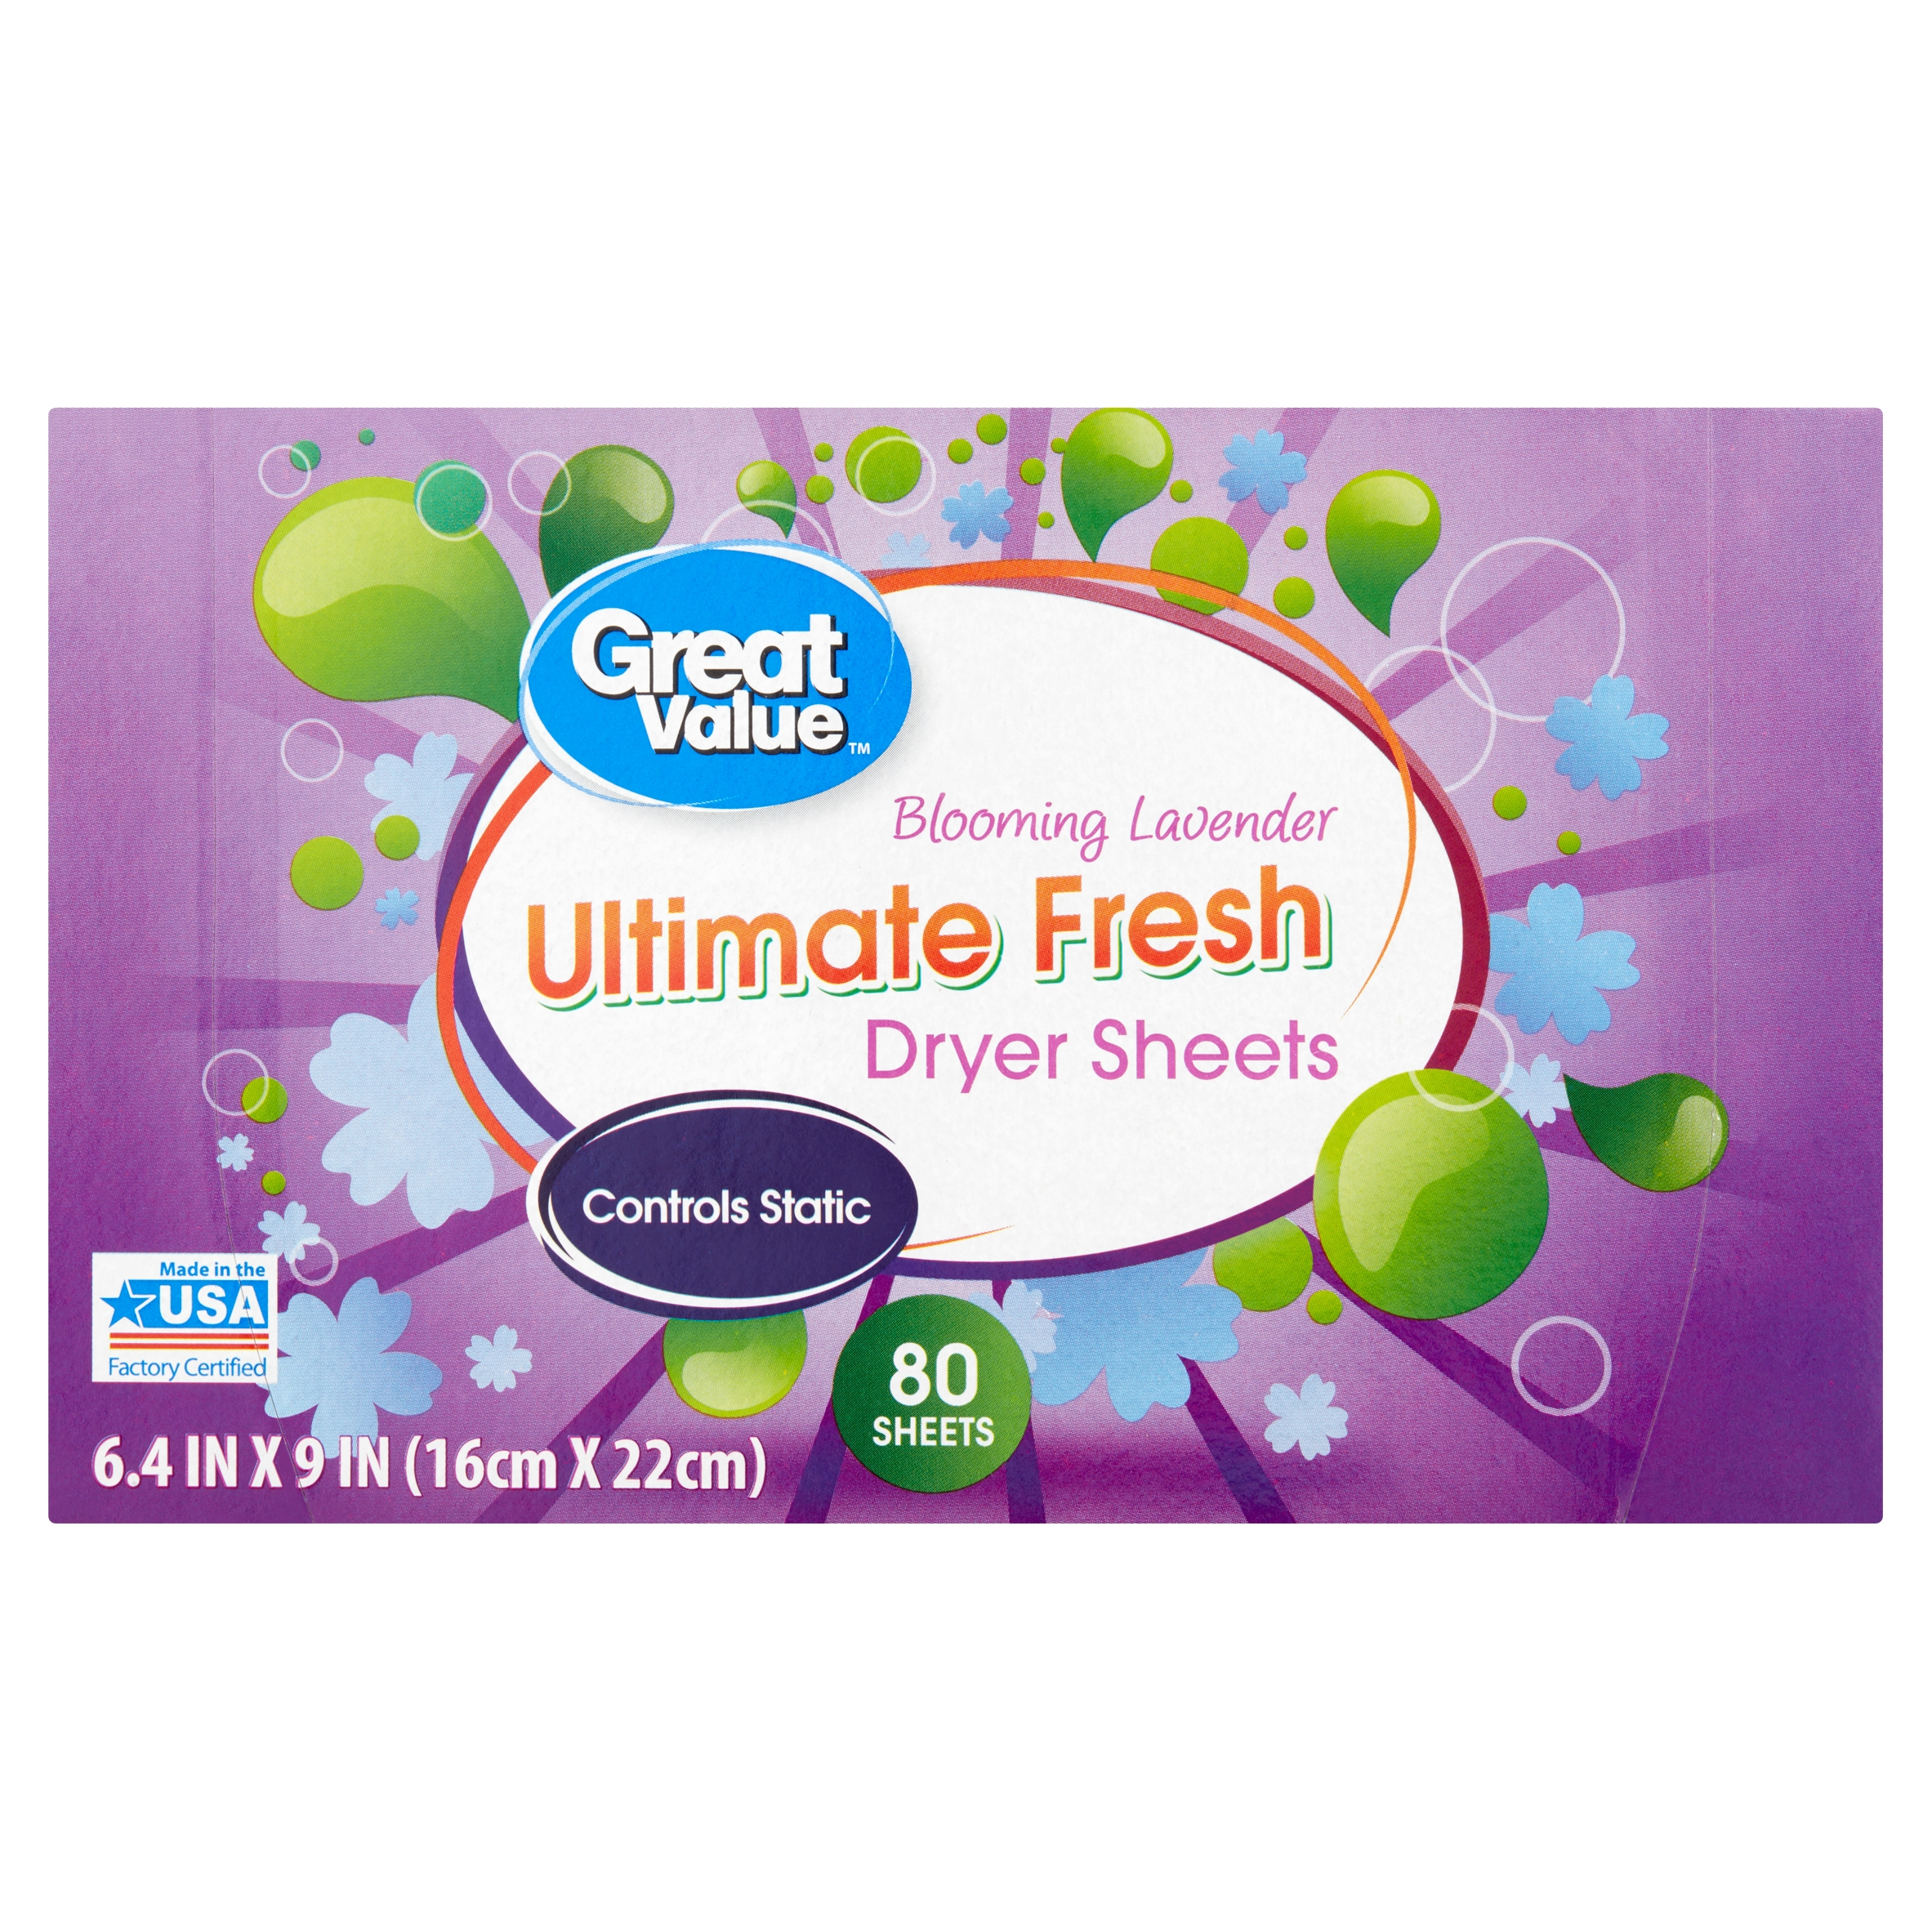 Great Value Ultimate Fresh Blooming Lavender Dryer Sheets